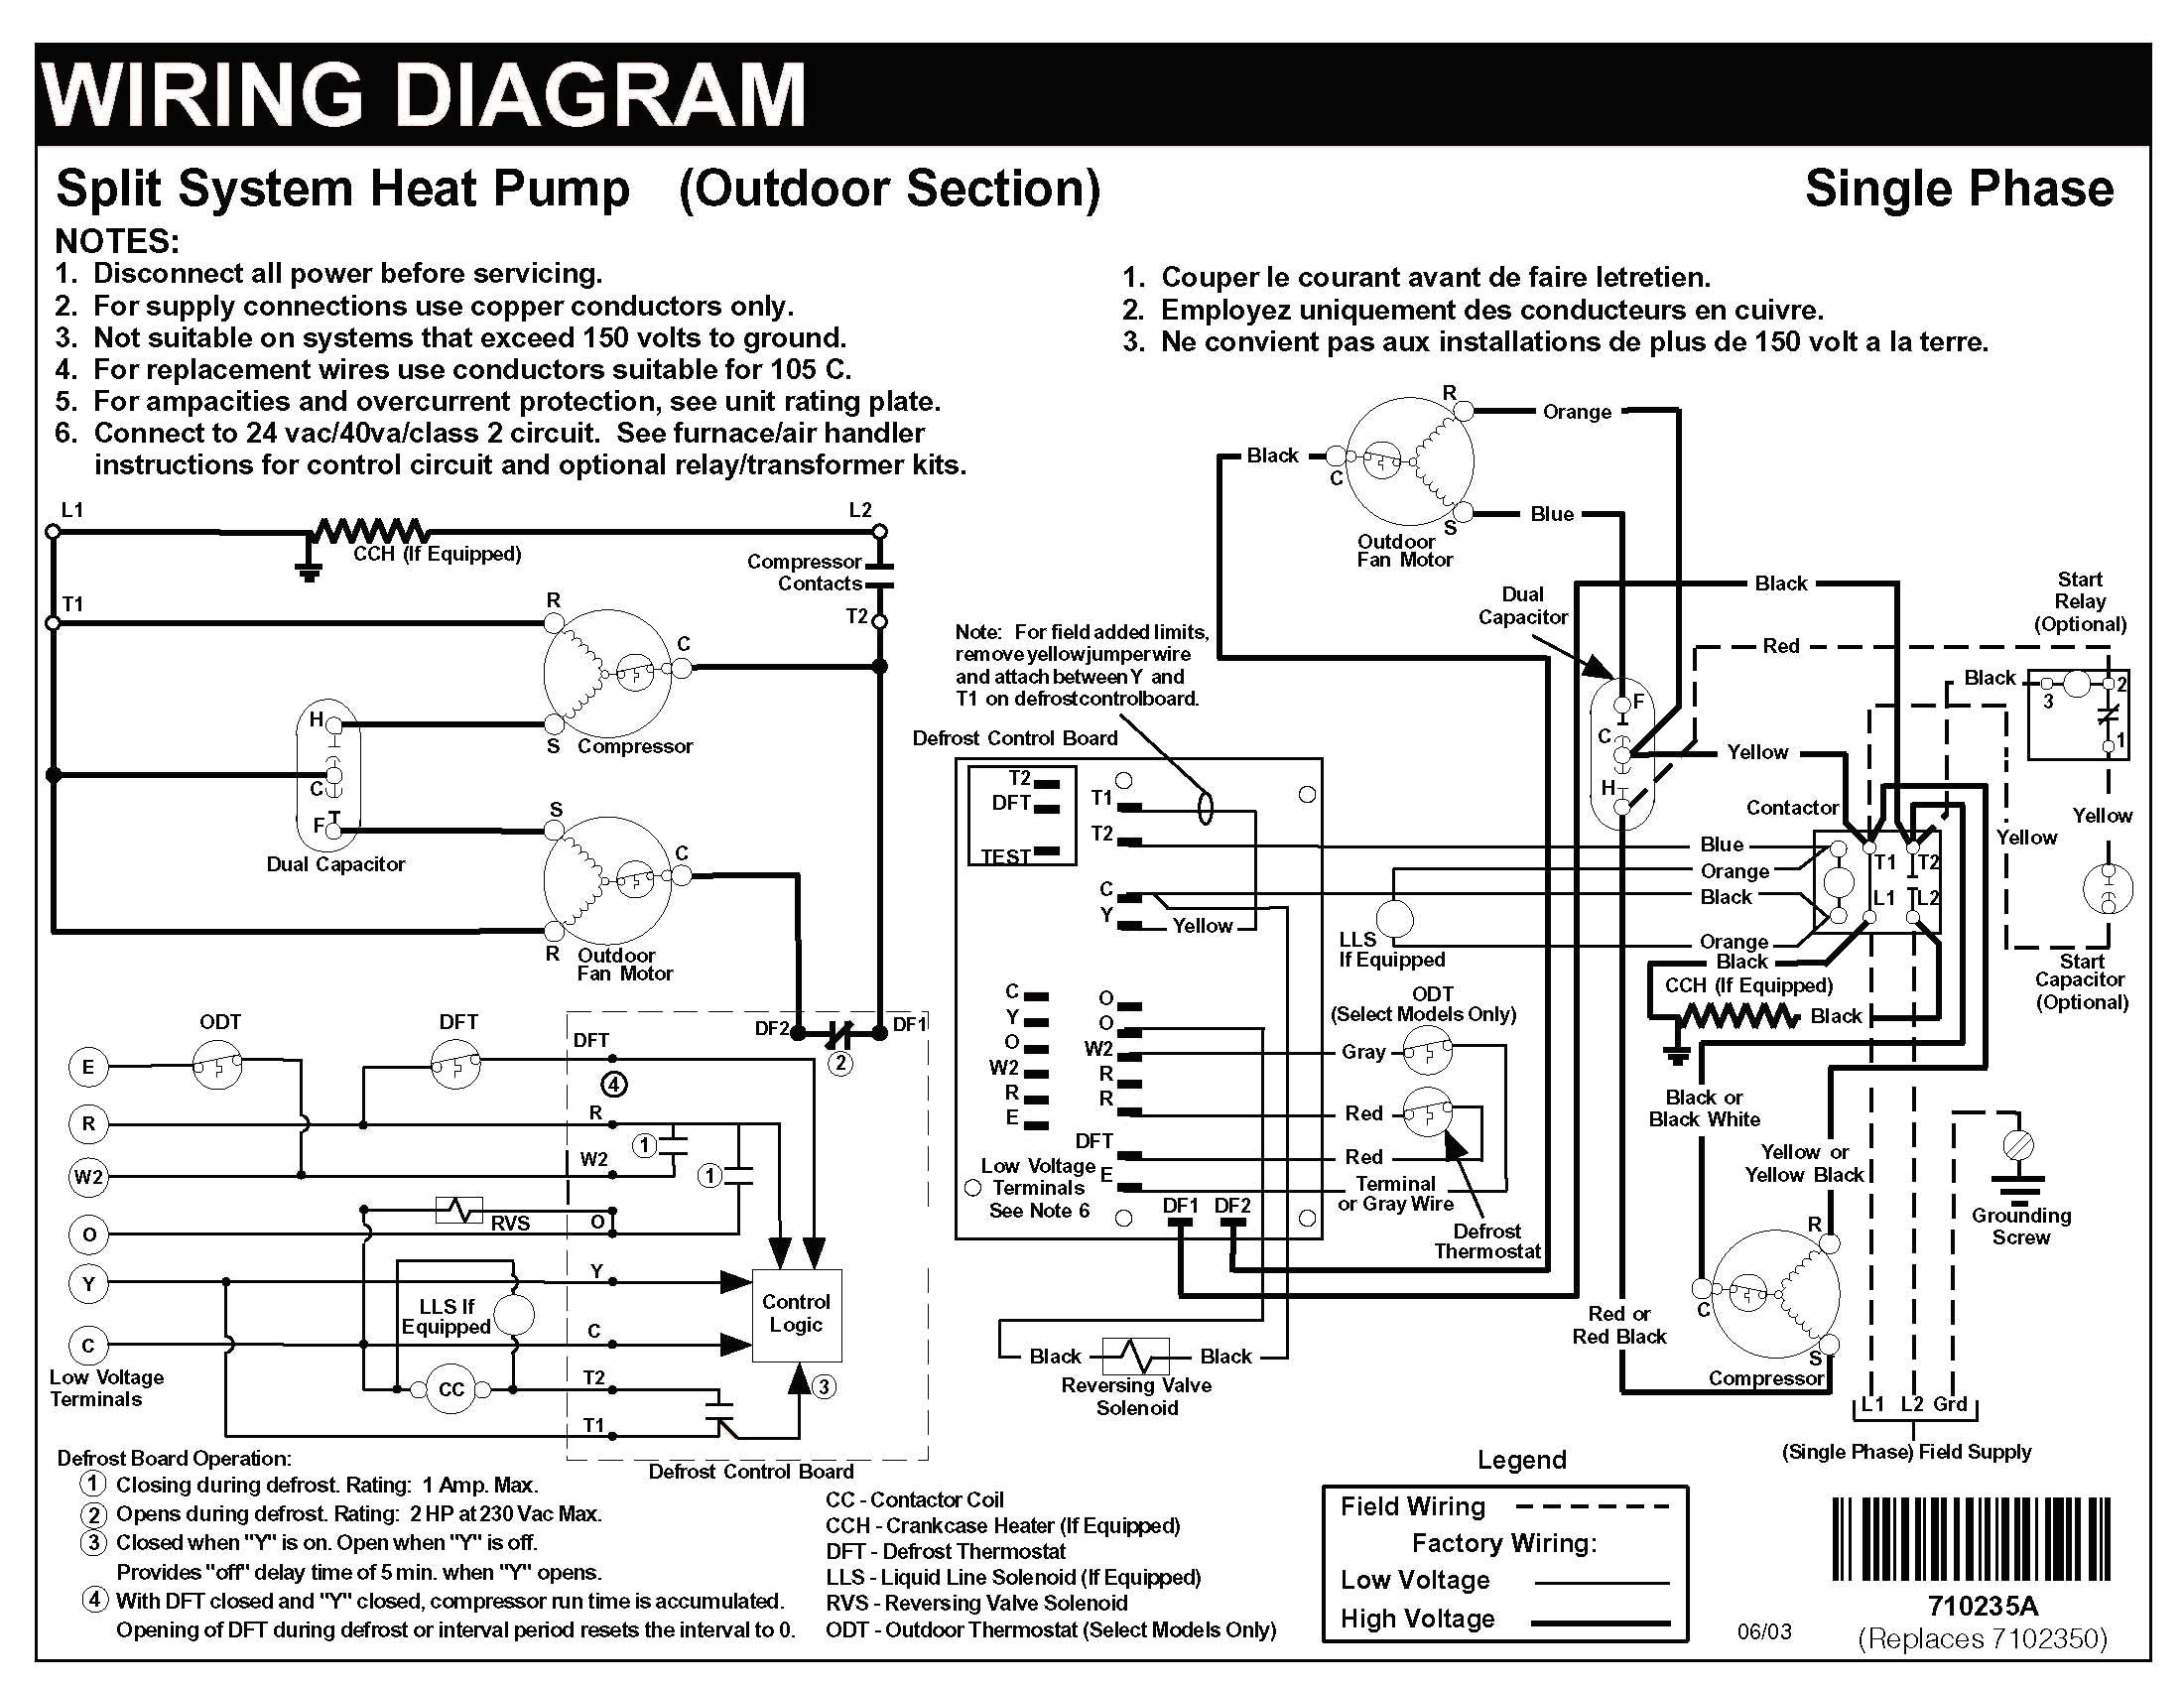 Goodman Air Handler Wiring Diagram - Kuwaitigenius - Goodman Heat Pump Wiring Diagram